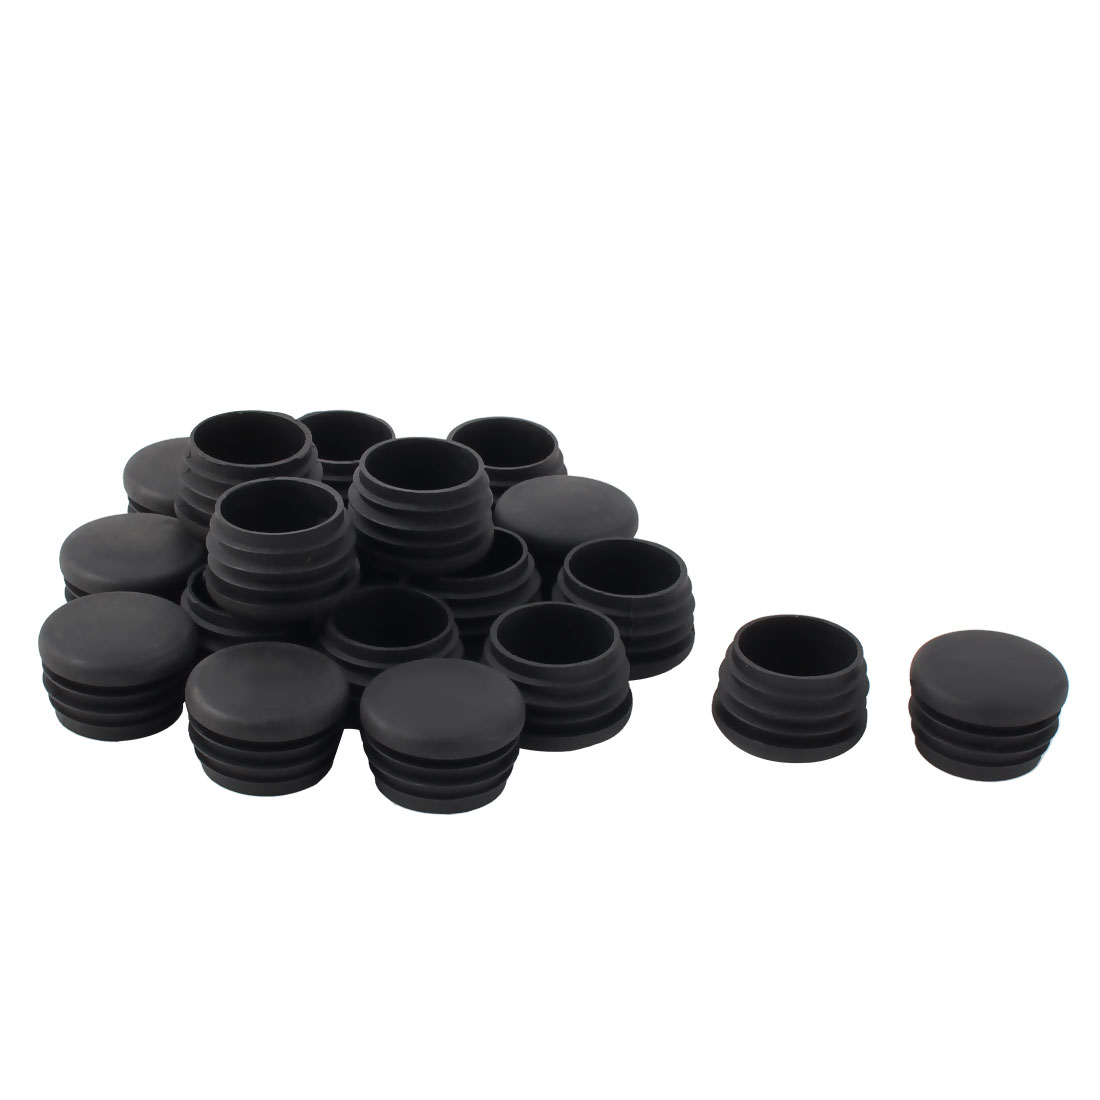 Plastic Round Tube Insert Blanking End Protectors Caps Black 32mm 20 PCS